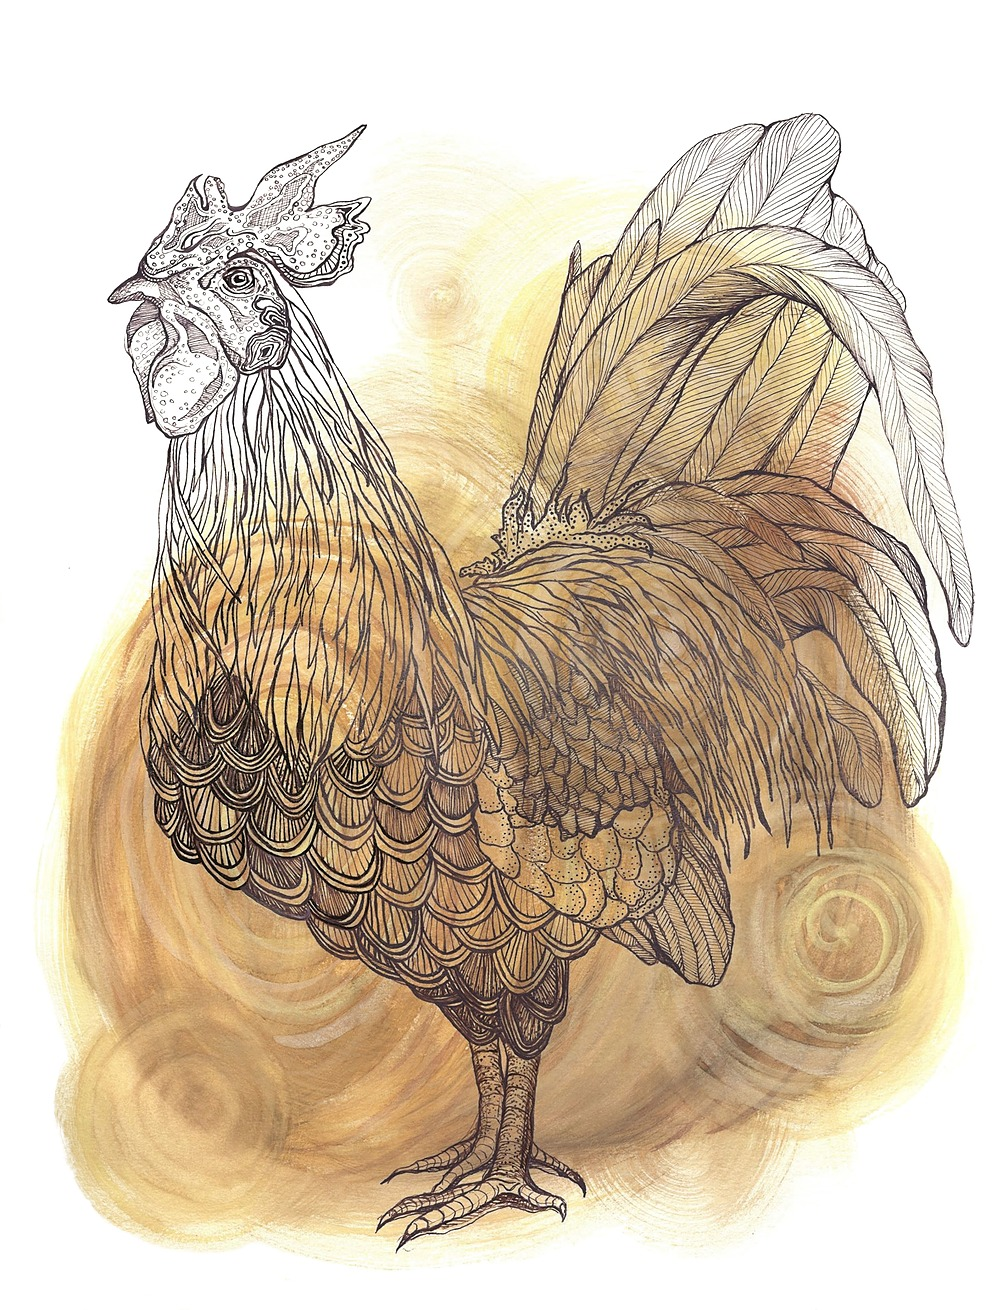 Rooster by Alexa Zepp | ArtworkNetwork.com